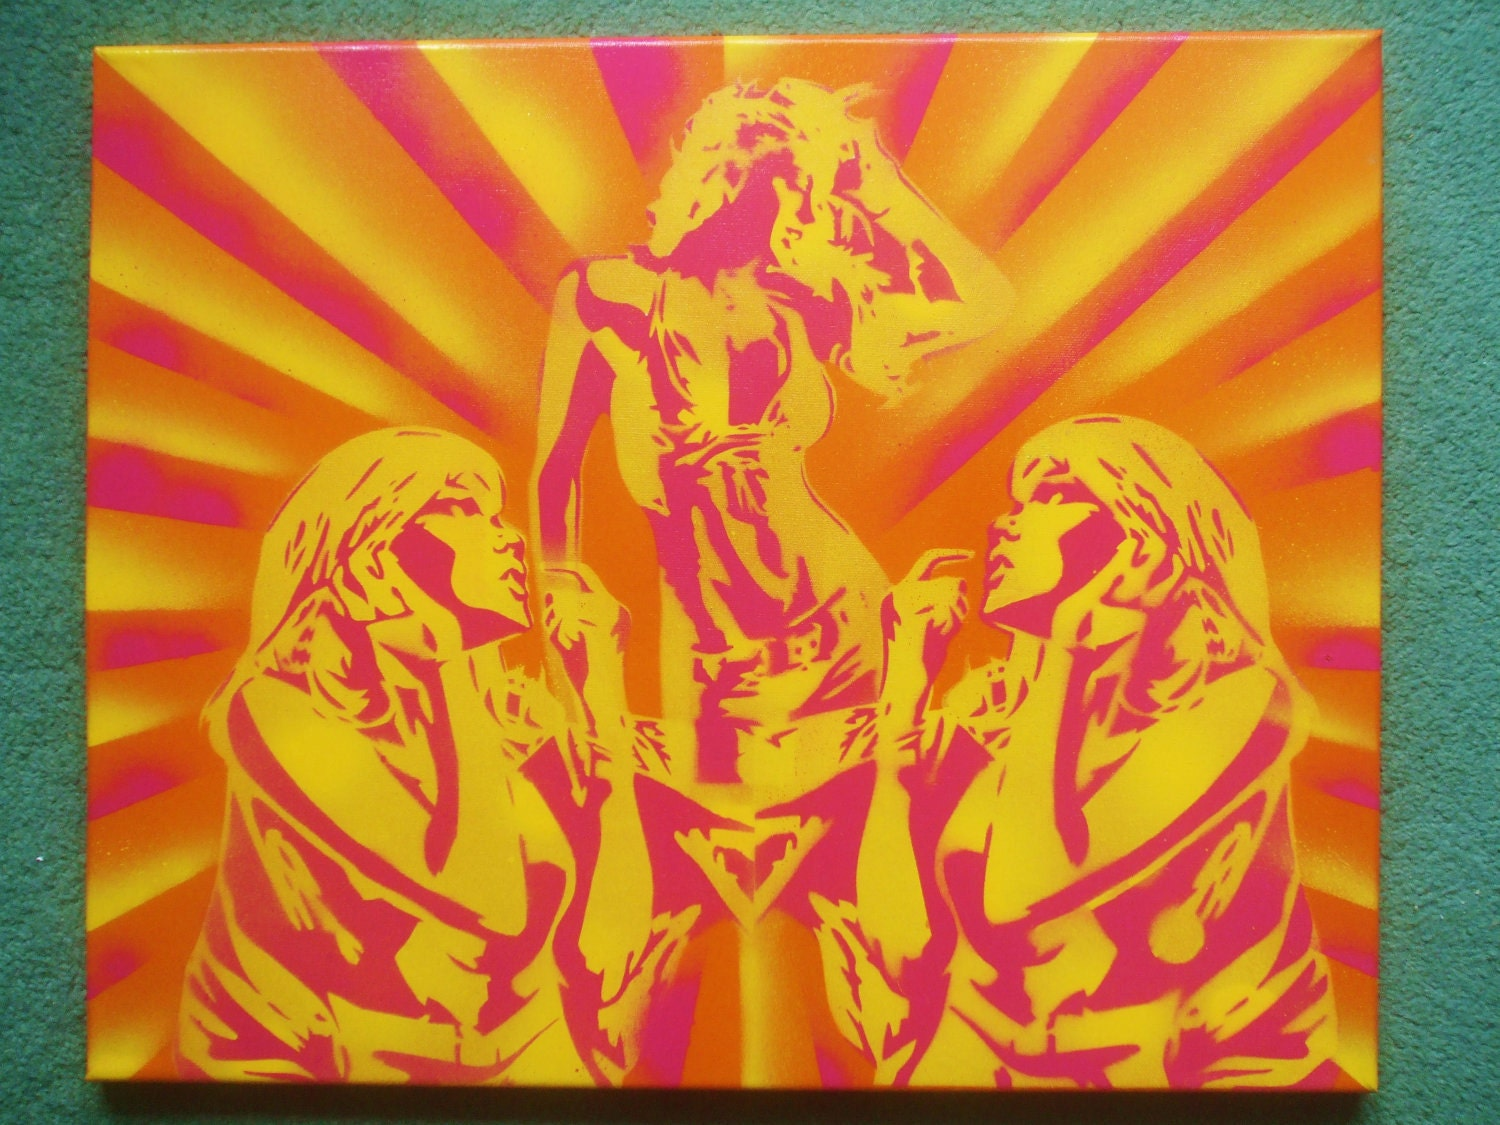 Disco dancer painting spray paint art stencil art canvas